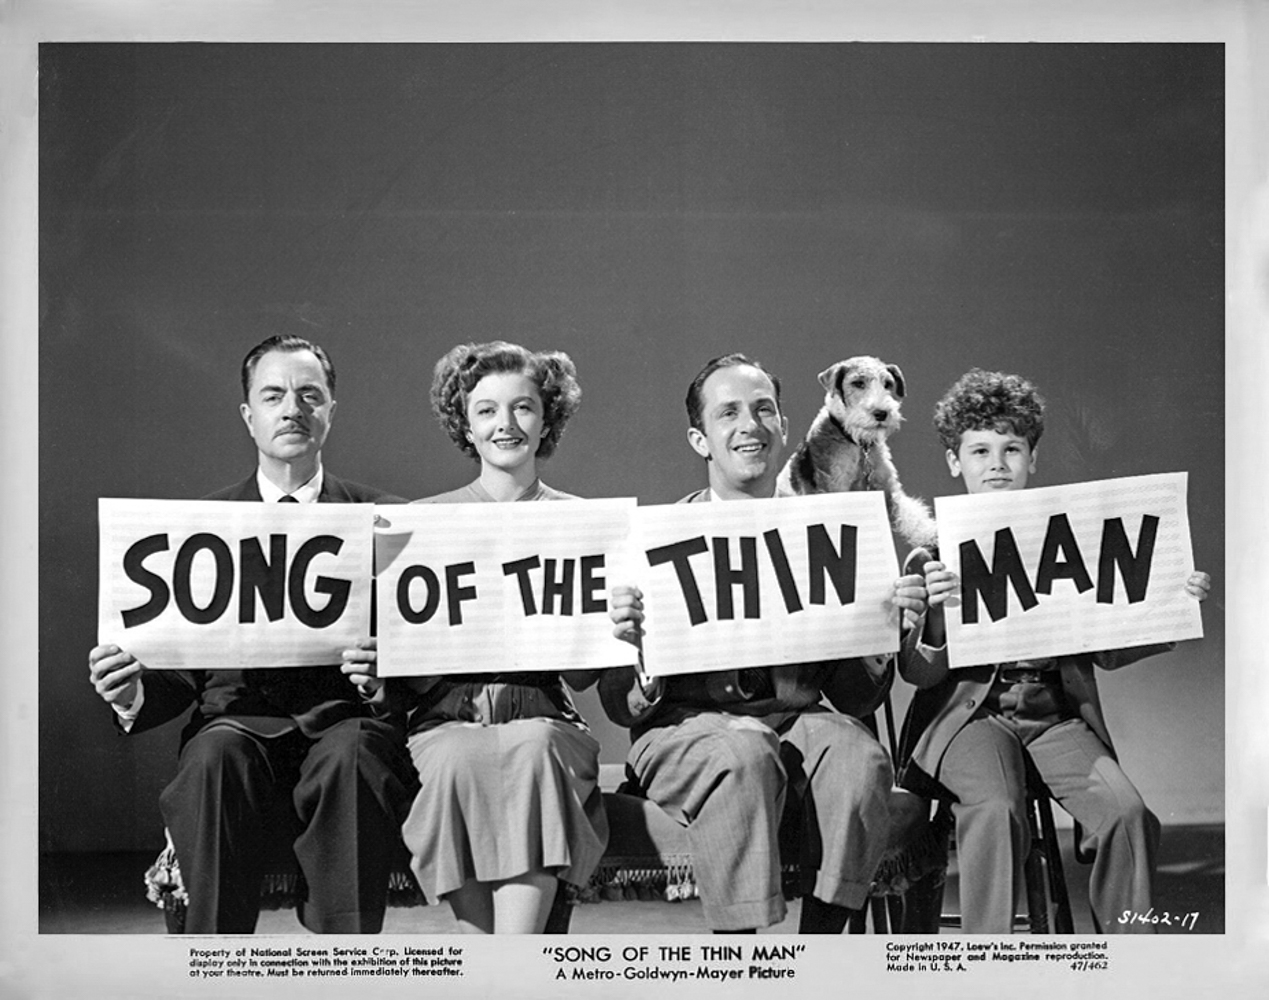 song of the thin man 1947 publicity still photo s1402-17